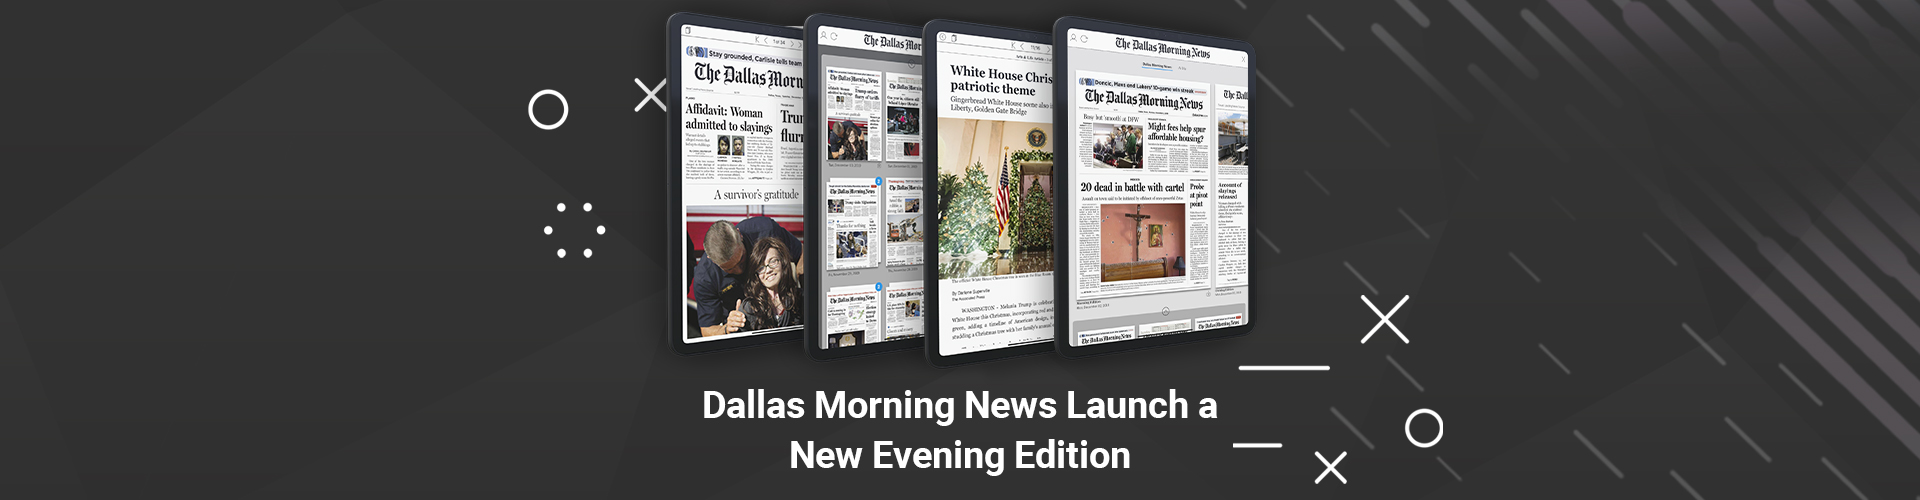 Header image of Dallas Morning News Bring Back their Evening Edition…